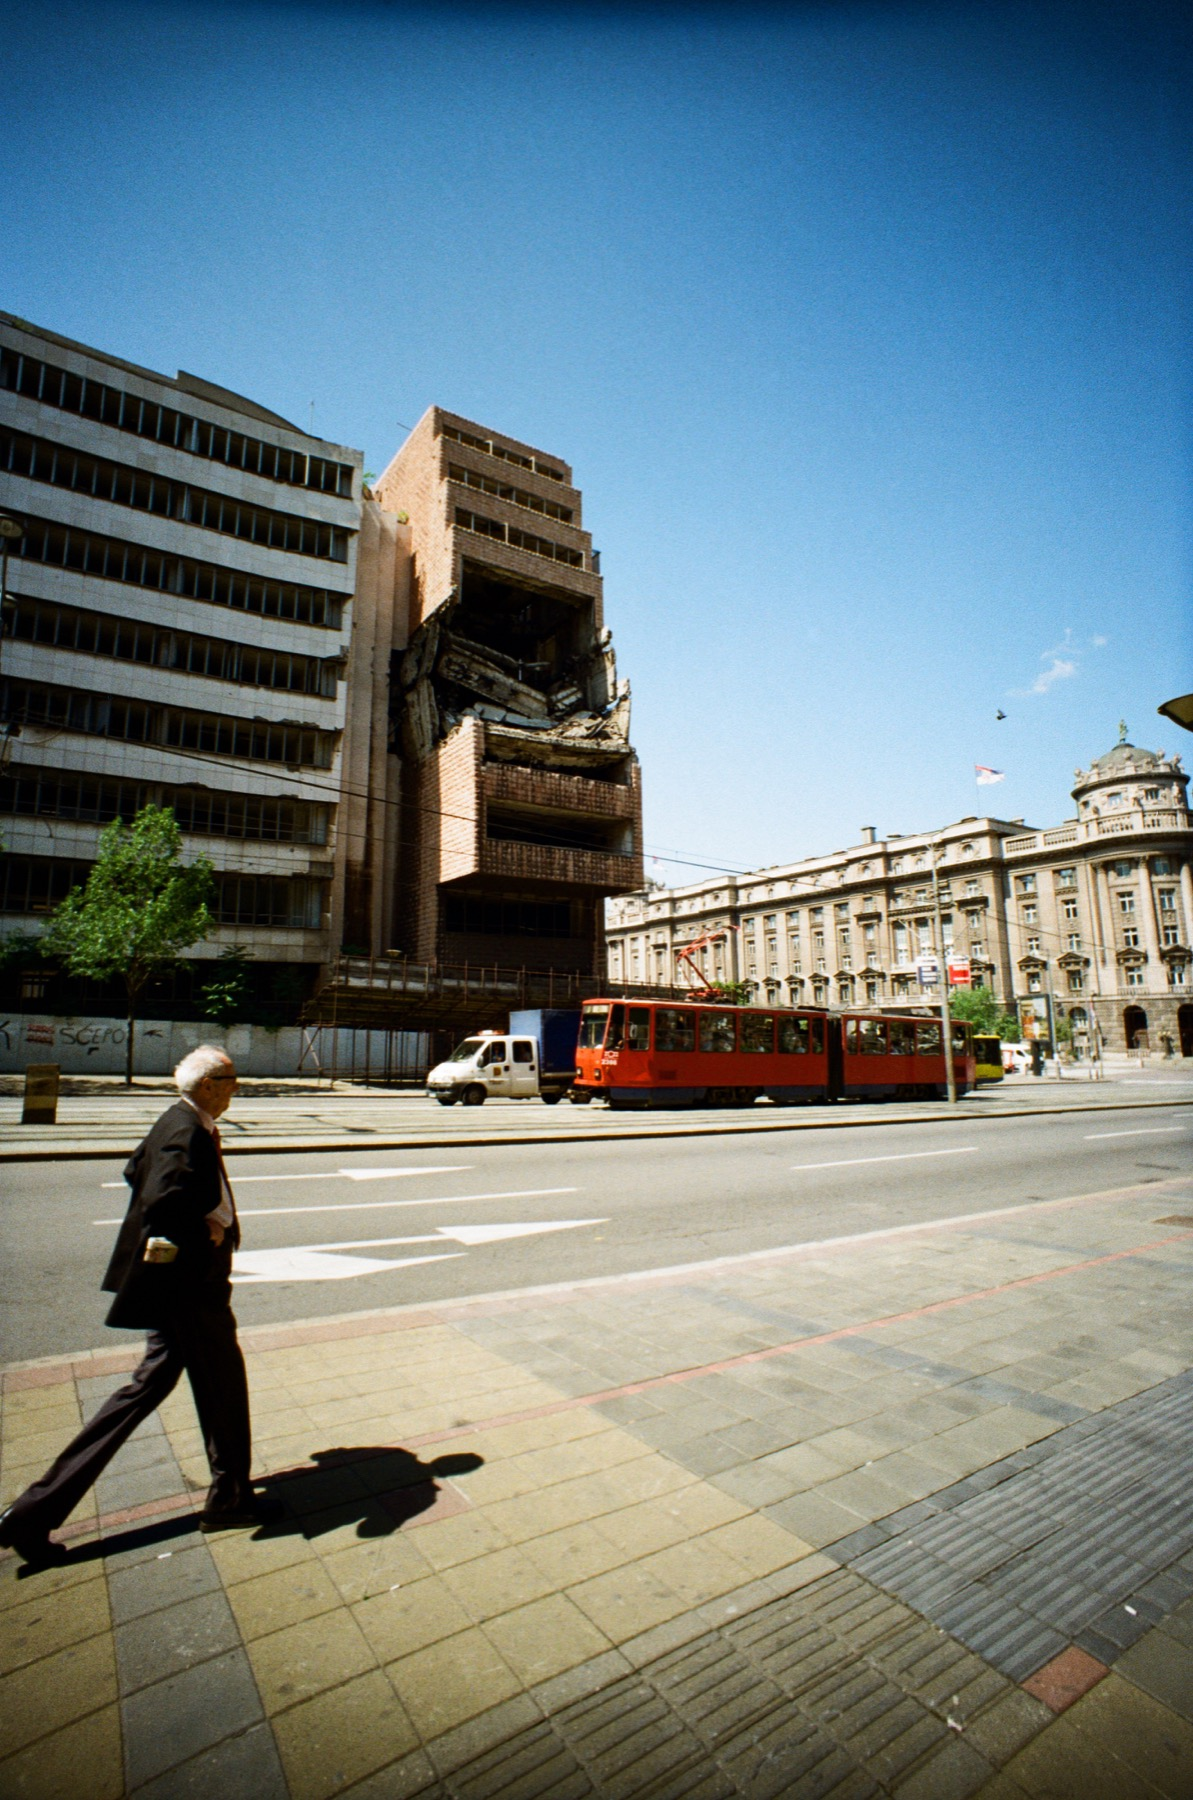 Yugoslav Ministry of Defence Building Still Damaged from 1999 NATO Bombing - Summer 2017